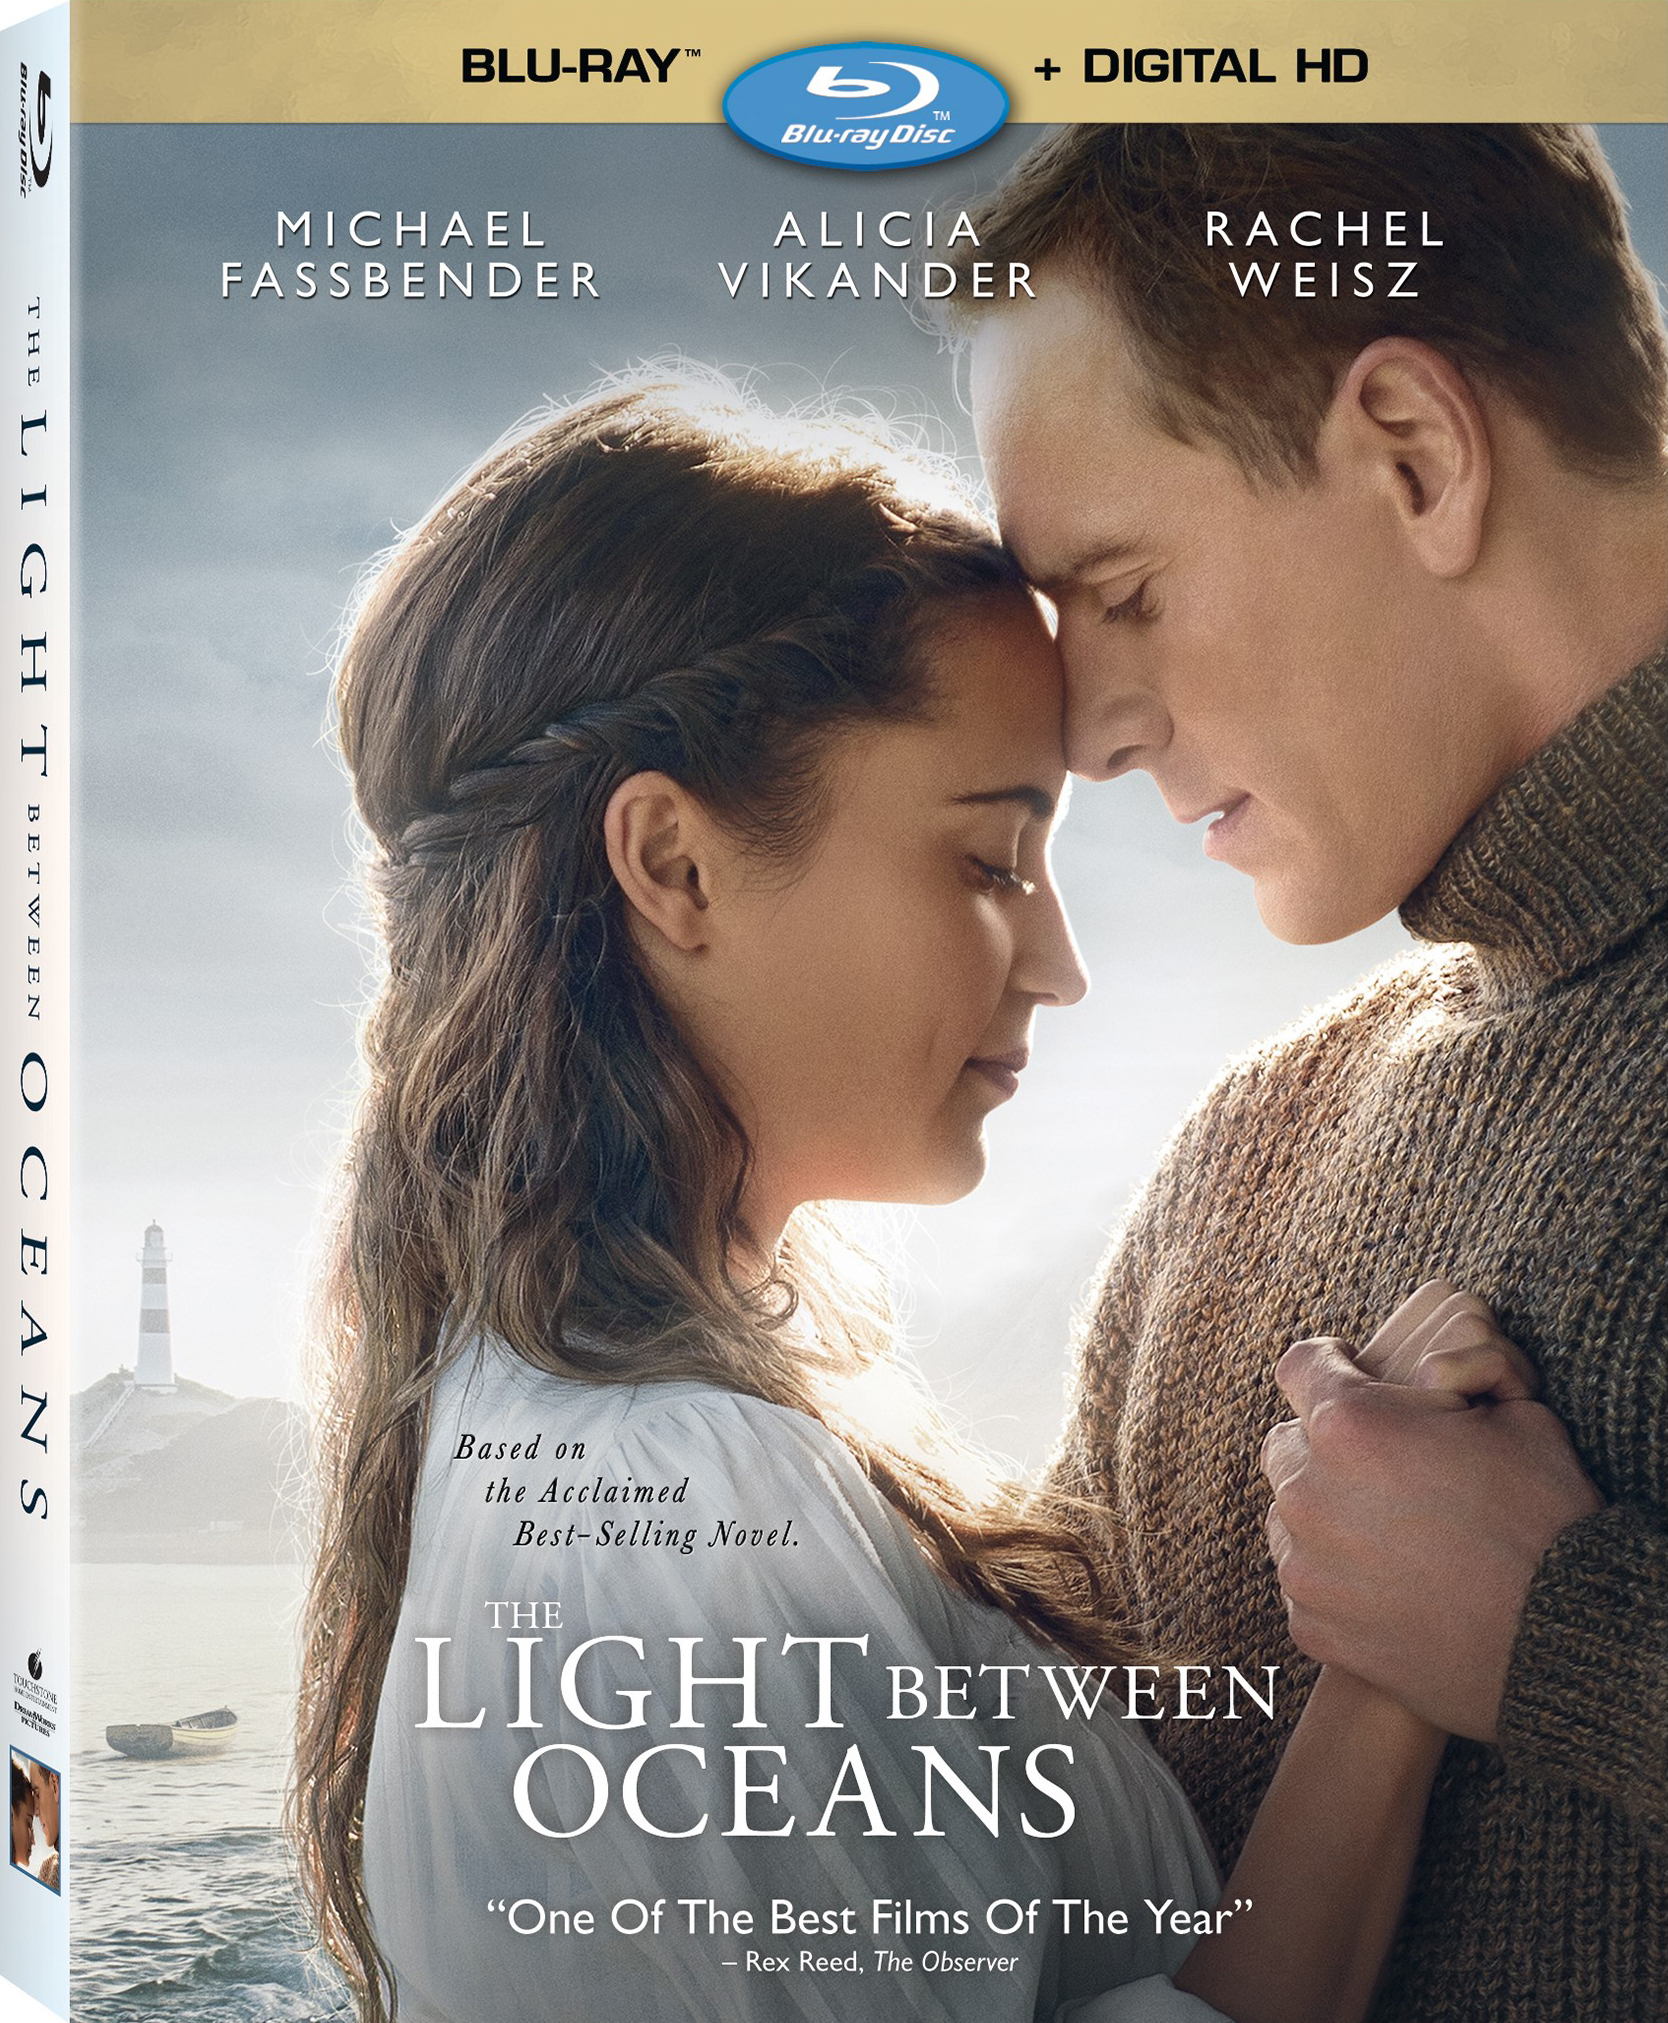 The Light Between Oceans (2016) poster image